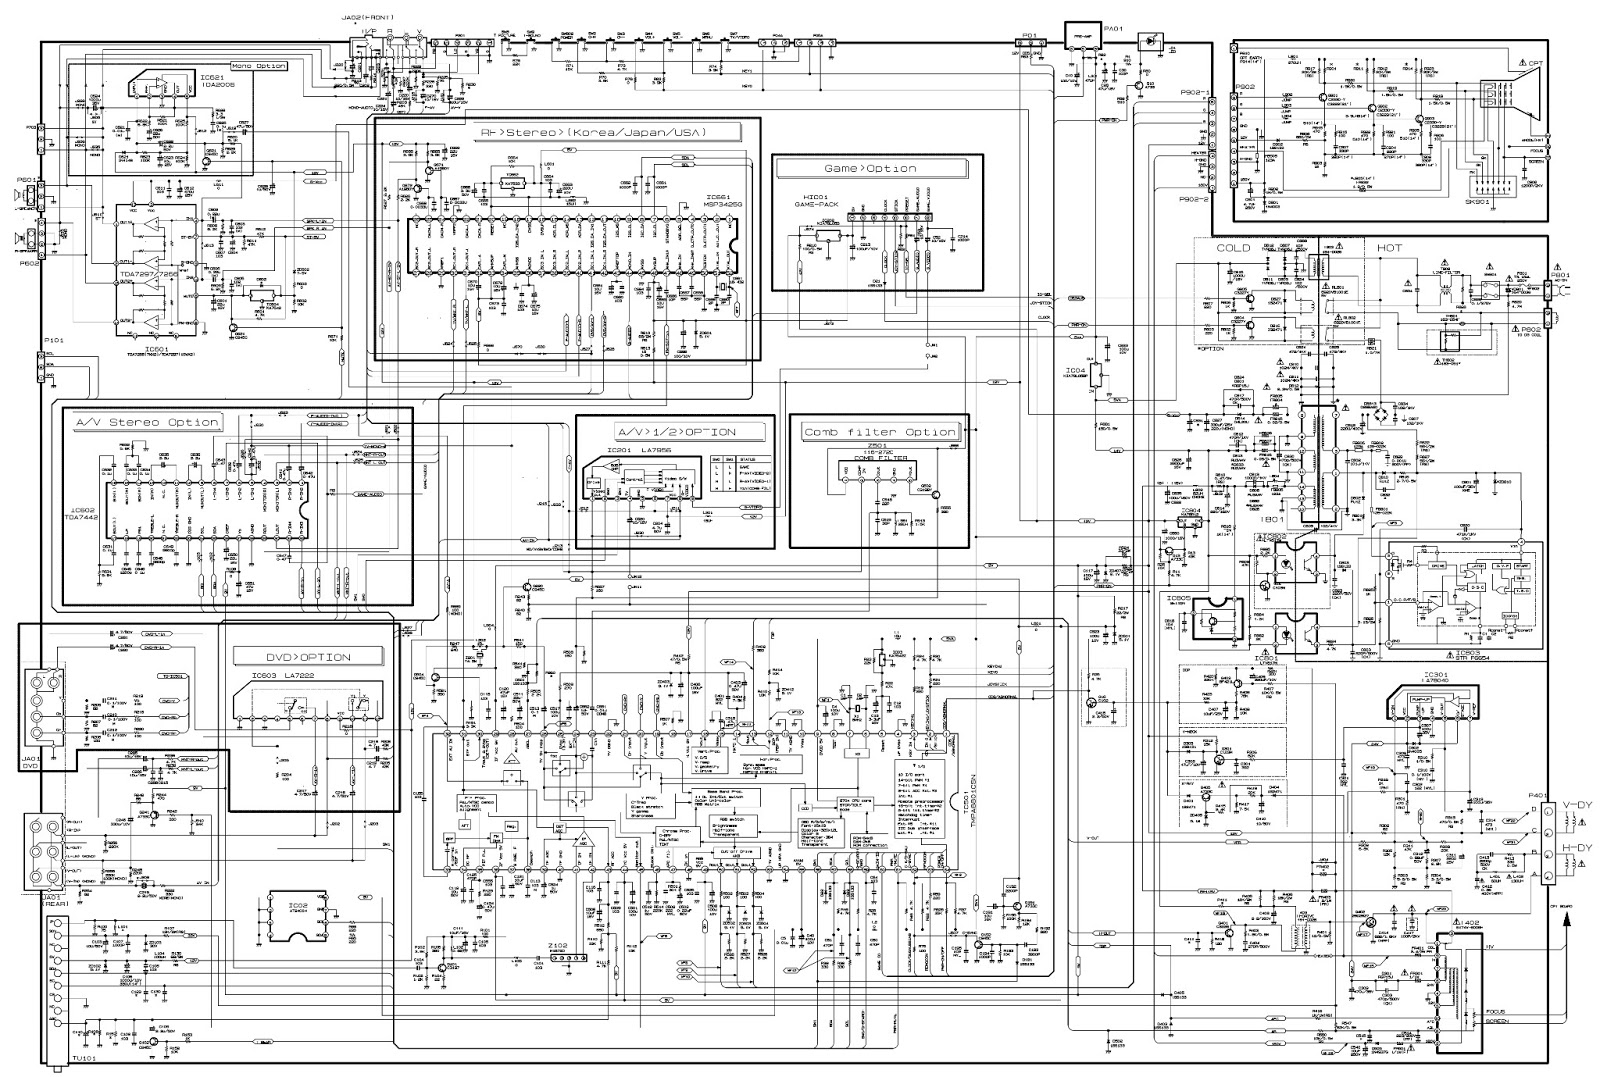 LG RP21FD10 - SCHEMATIC DIAGRAM - Used ICs - TDA2006